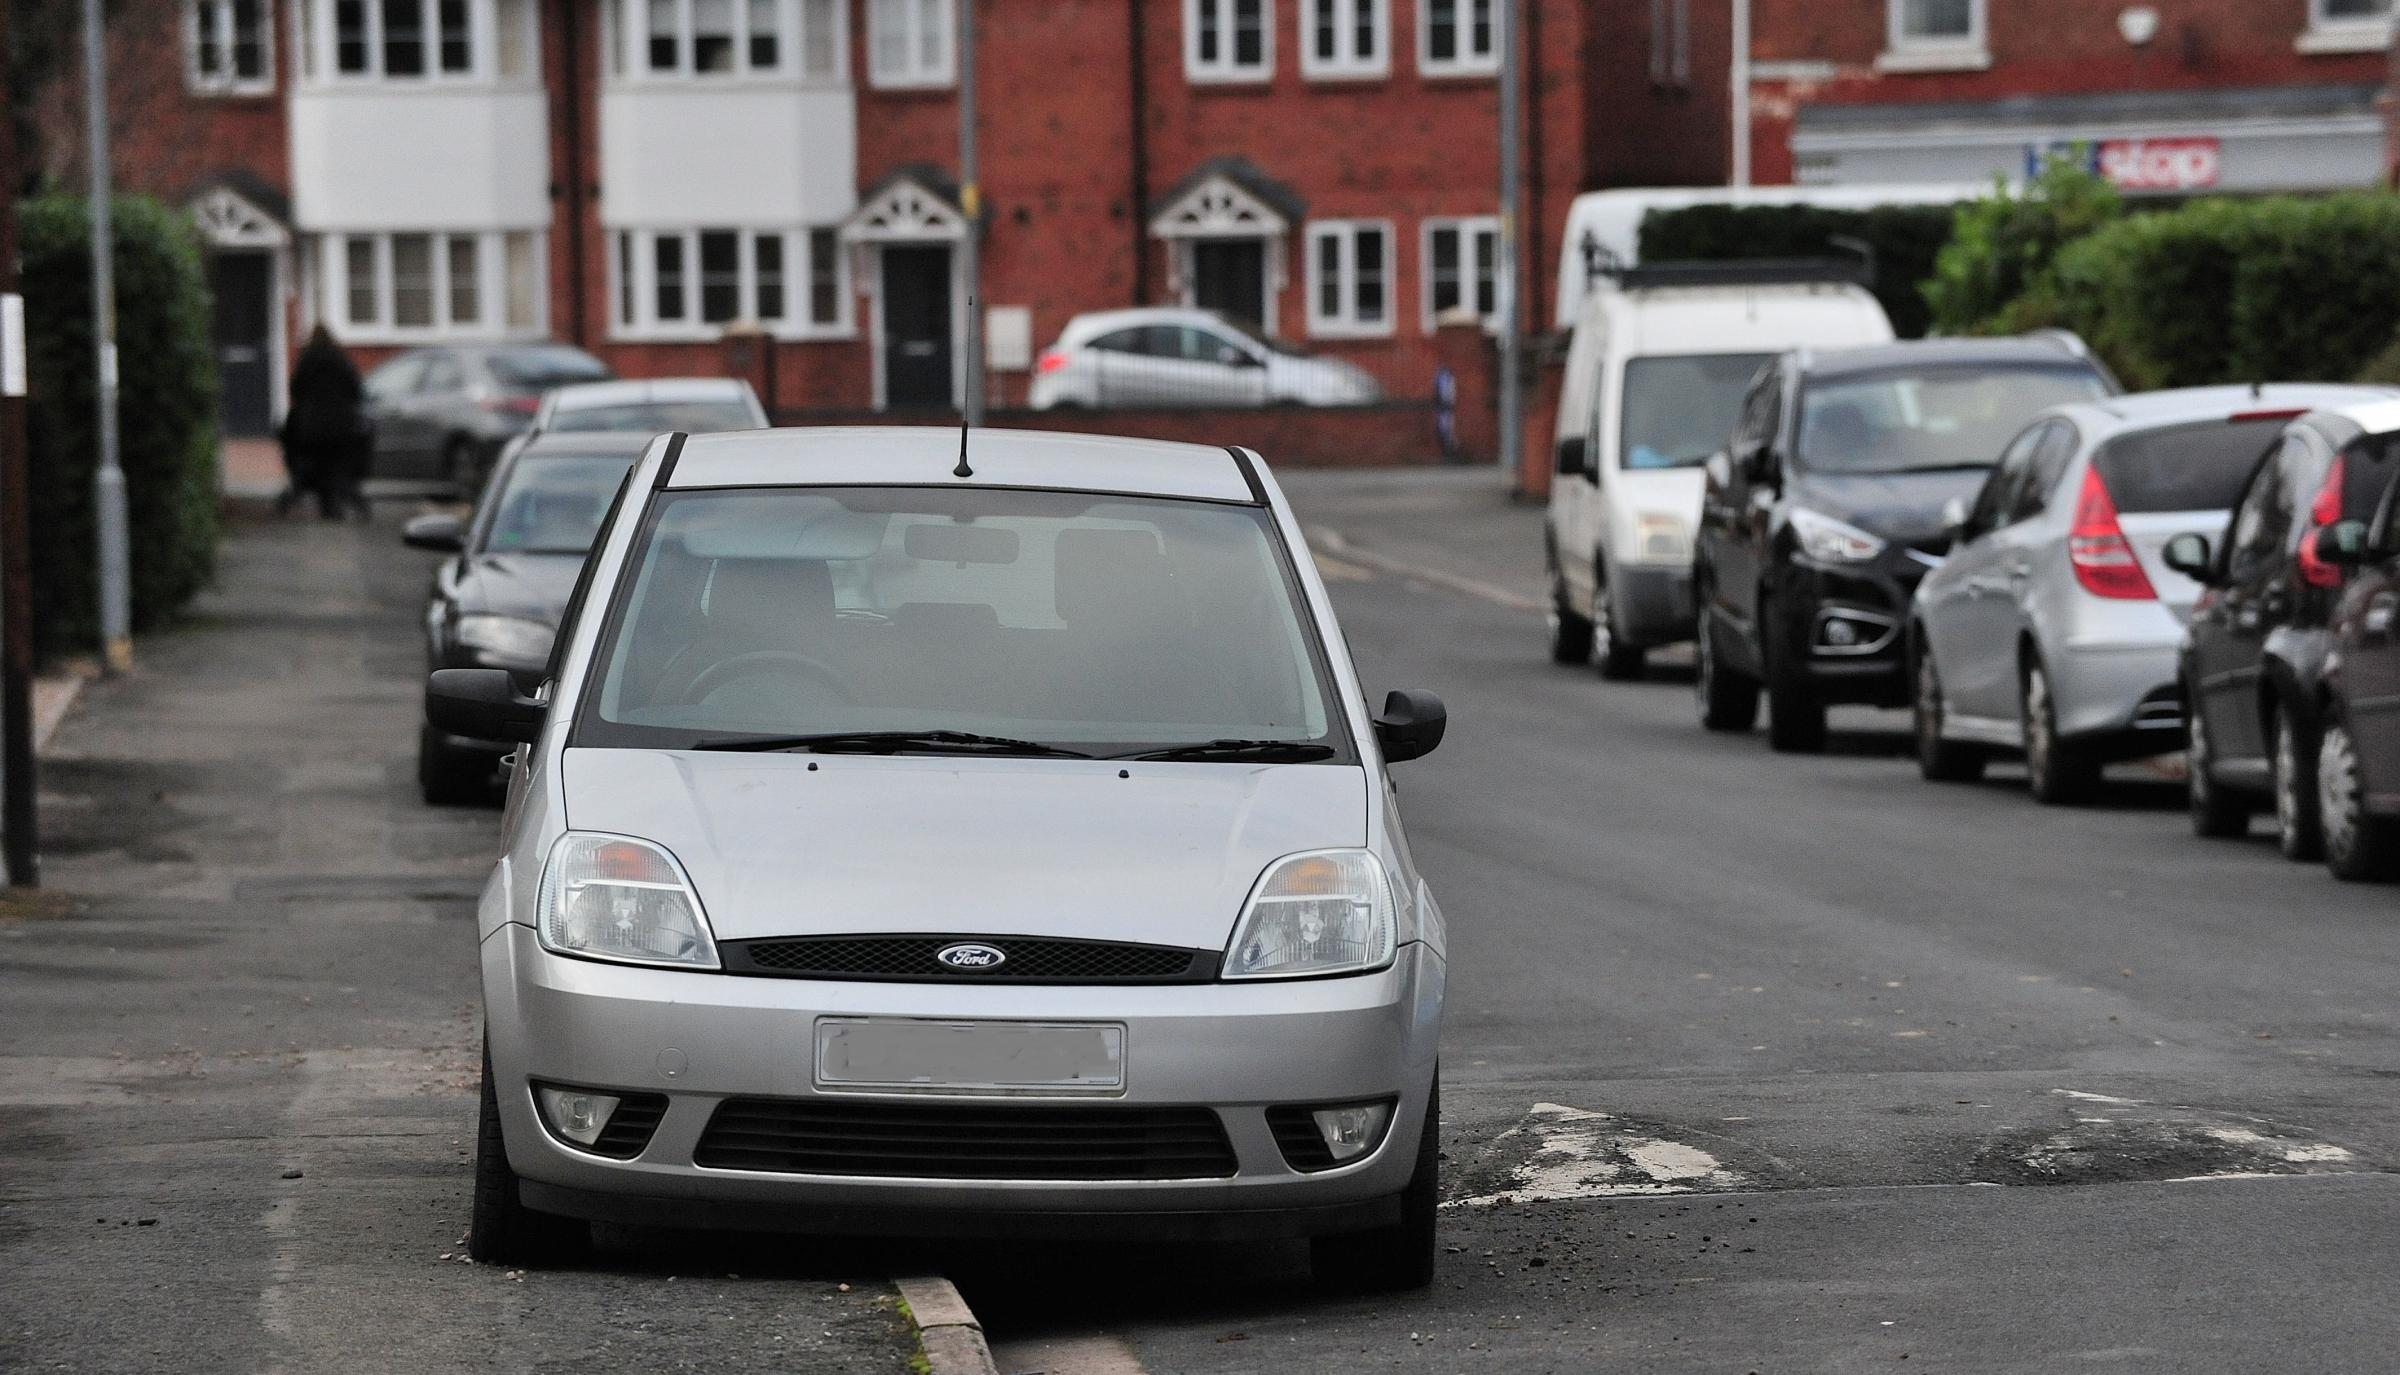 'NUISANCE': The abandoned Ford Fiesta Car has apparently been parked on Blanquettes Avenue in Worcester for over six months